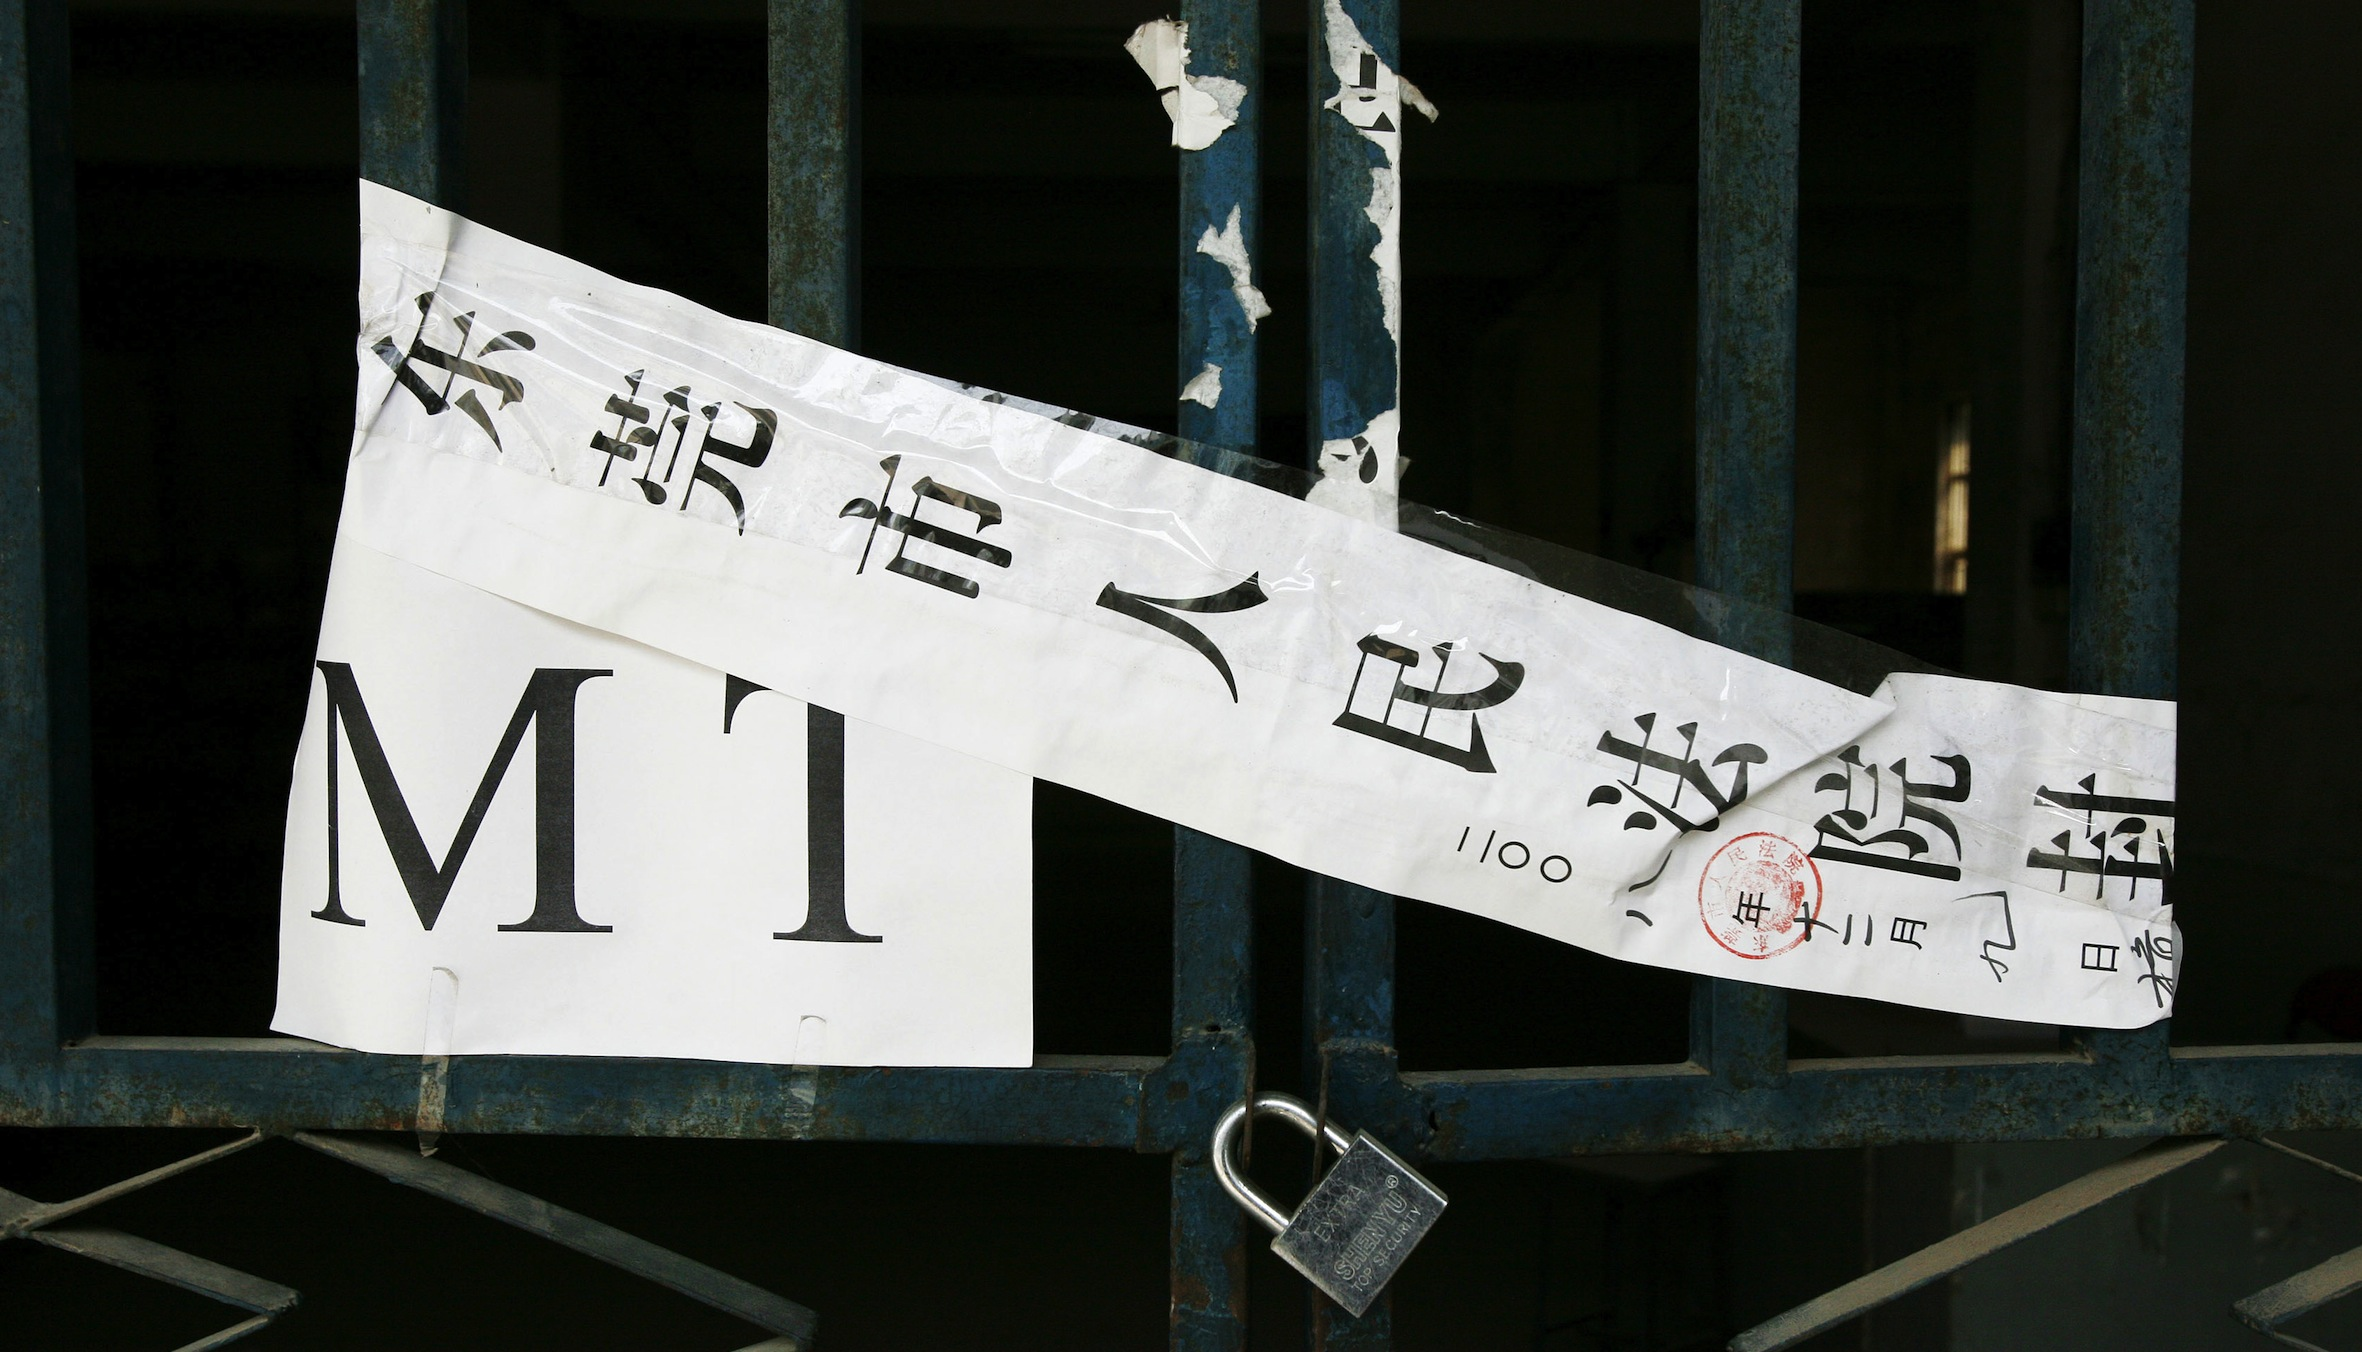 A seal from the Dongguan City Court is taped to a gate at the closed Smart Union toy factory in Zhangmutou, in Dongguan, in China's southern Guangdong province, Tuesday, Feb. 10, 2009. Early signs are pointing to a bleak year for industries in China's southern manufacturing hub.  Industry experts say thousands of factories are idle or haven't even bothered to open since the Lunar New Year holiday ended in late January - which usually marks the start of the busy season.